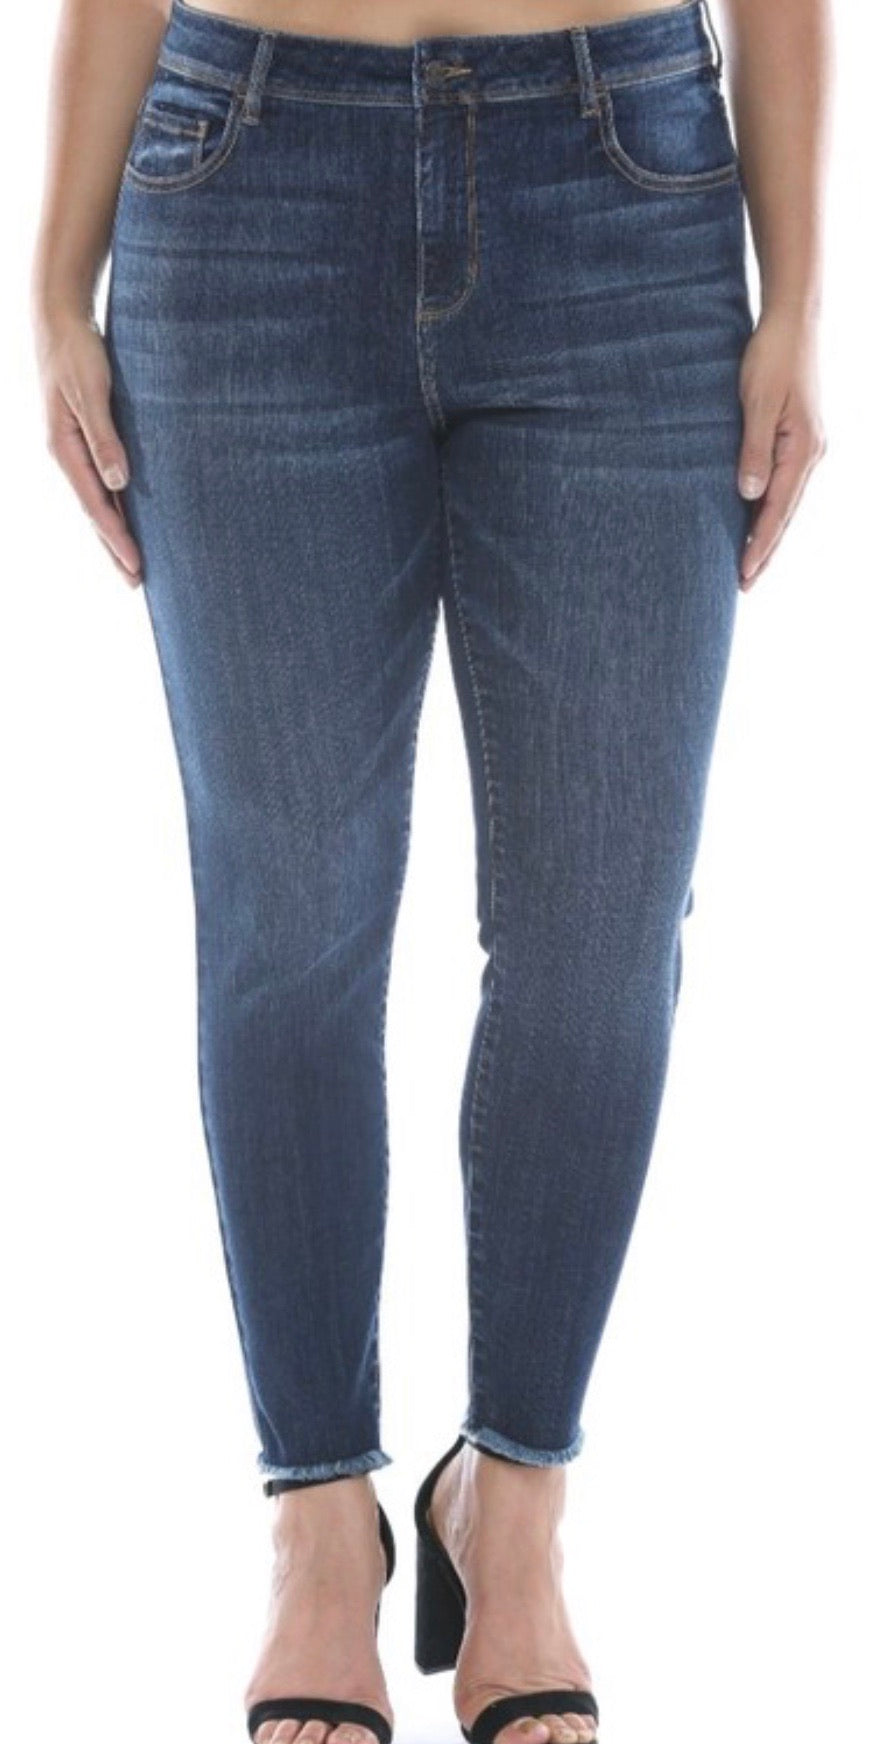 Jeans - Cello Dark Wash Frayed Hem